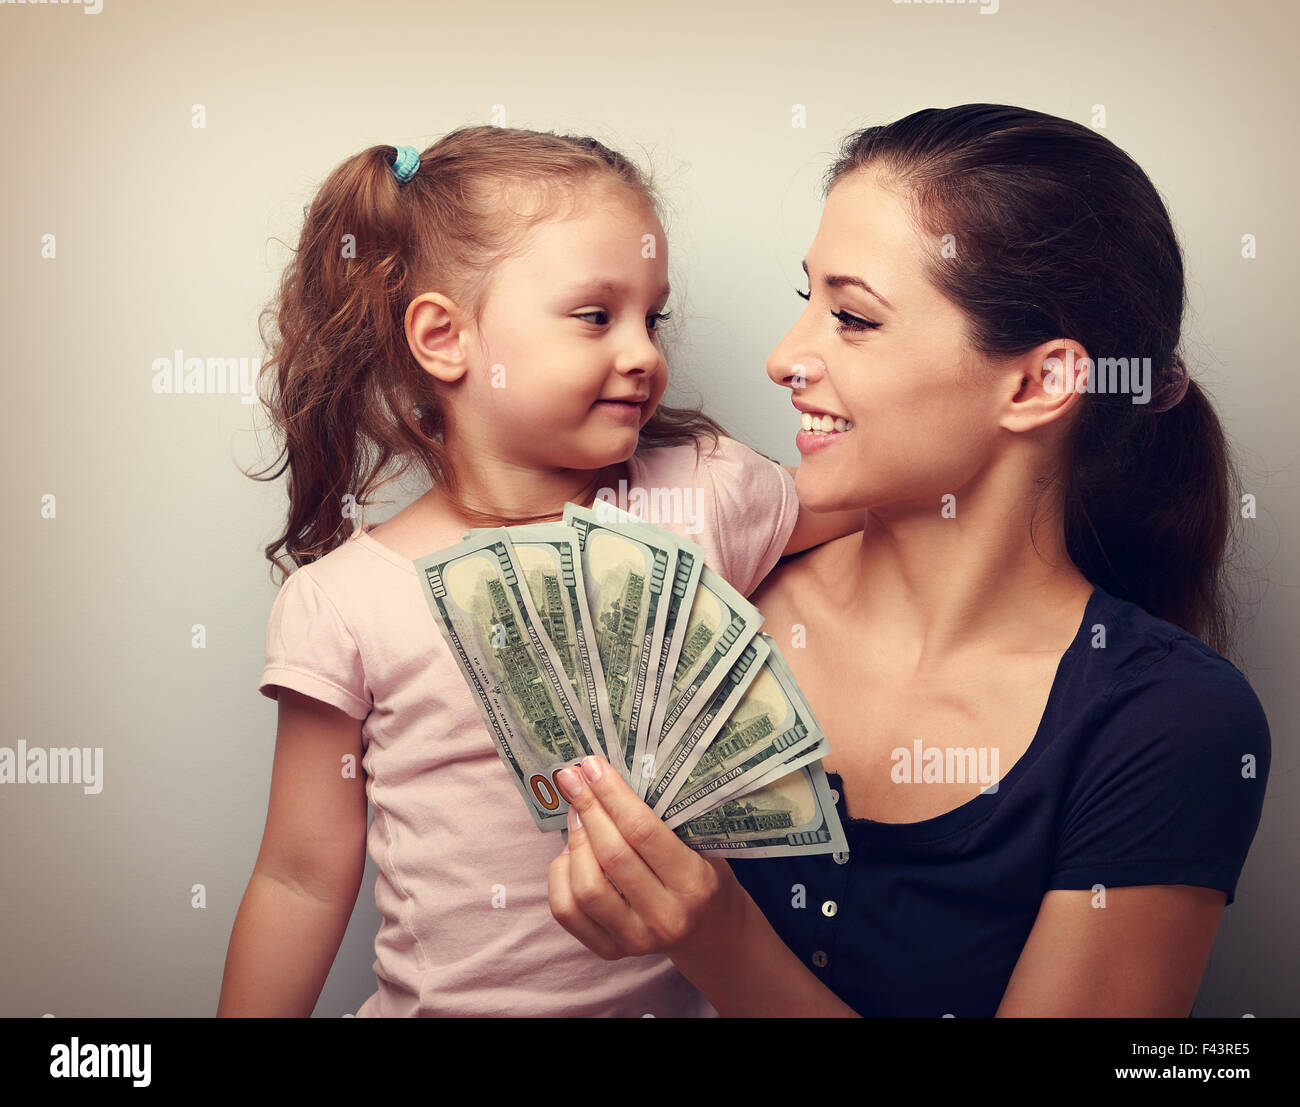 Smiling winner family hugging, looking each other and holding dollars. Happiness. Vintage closeup portrait - Stock Image